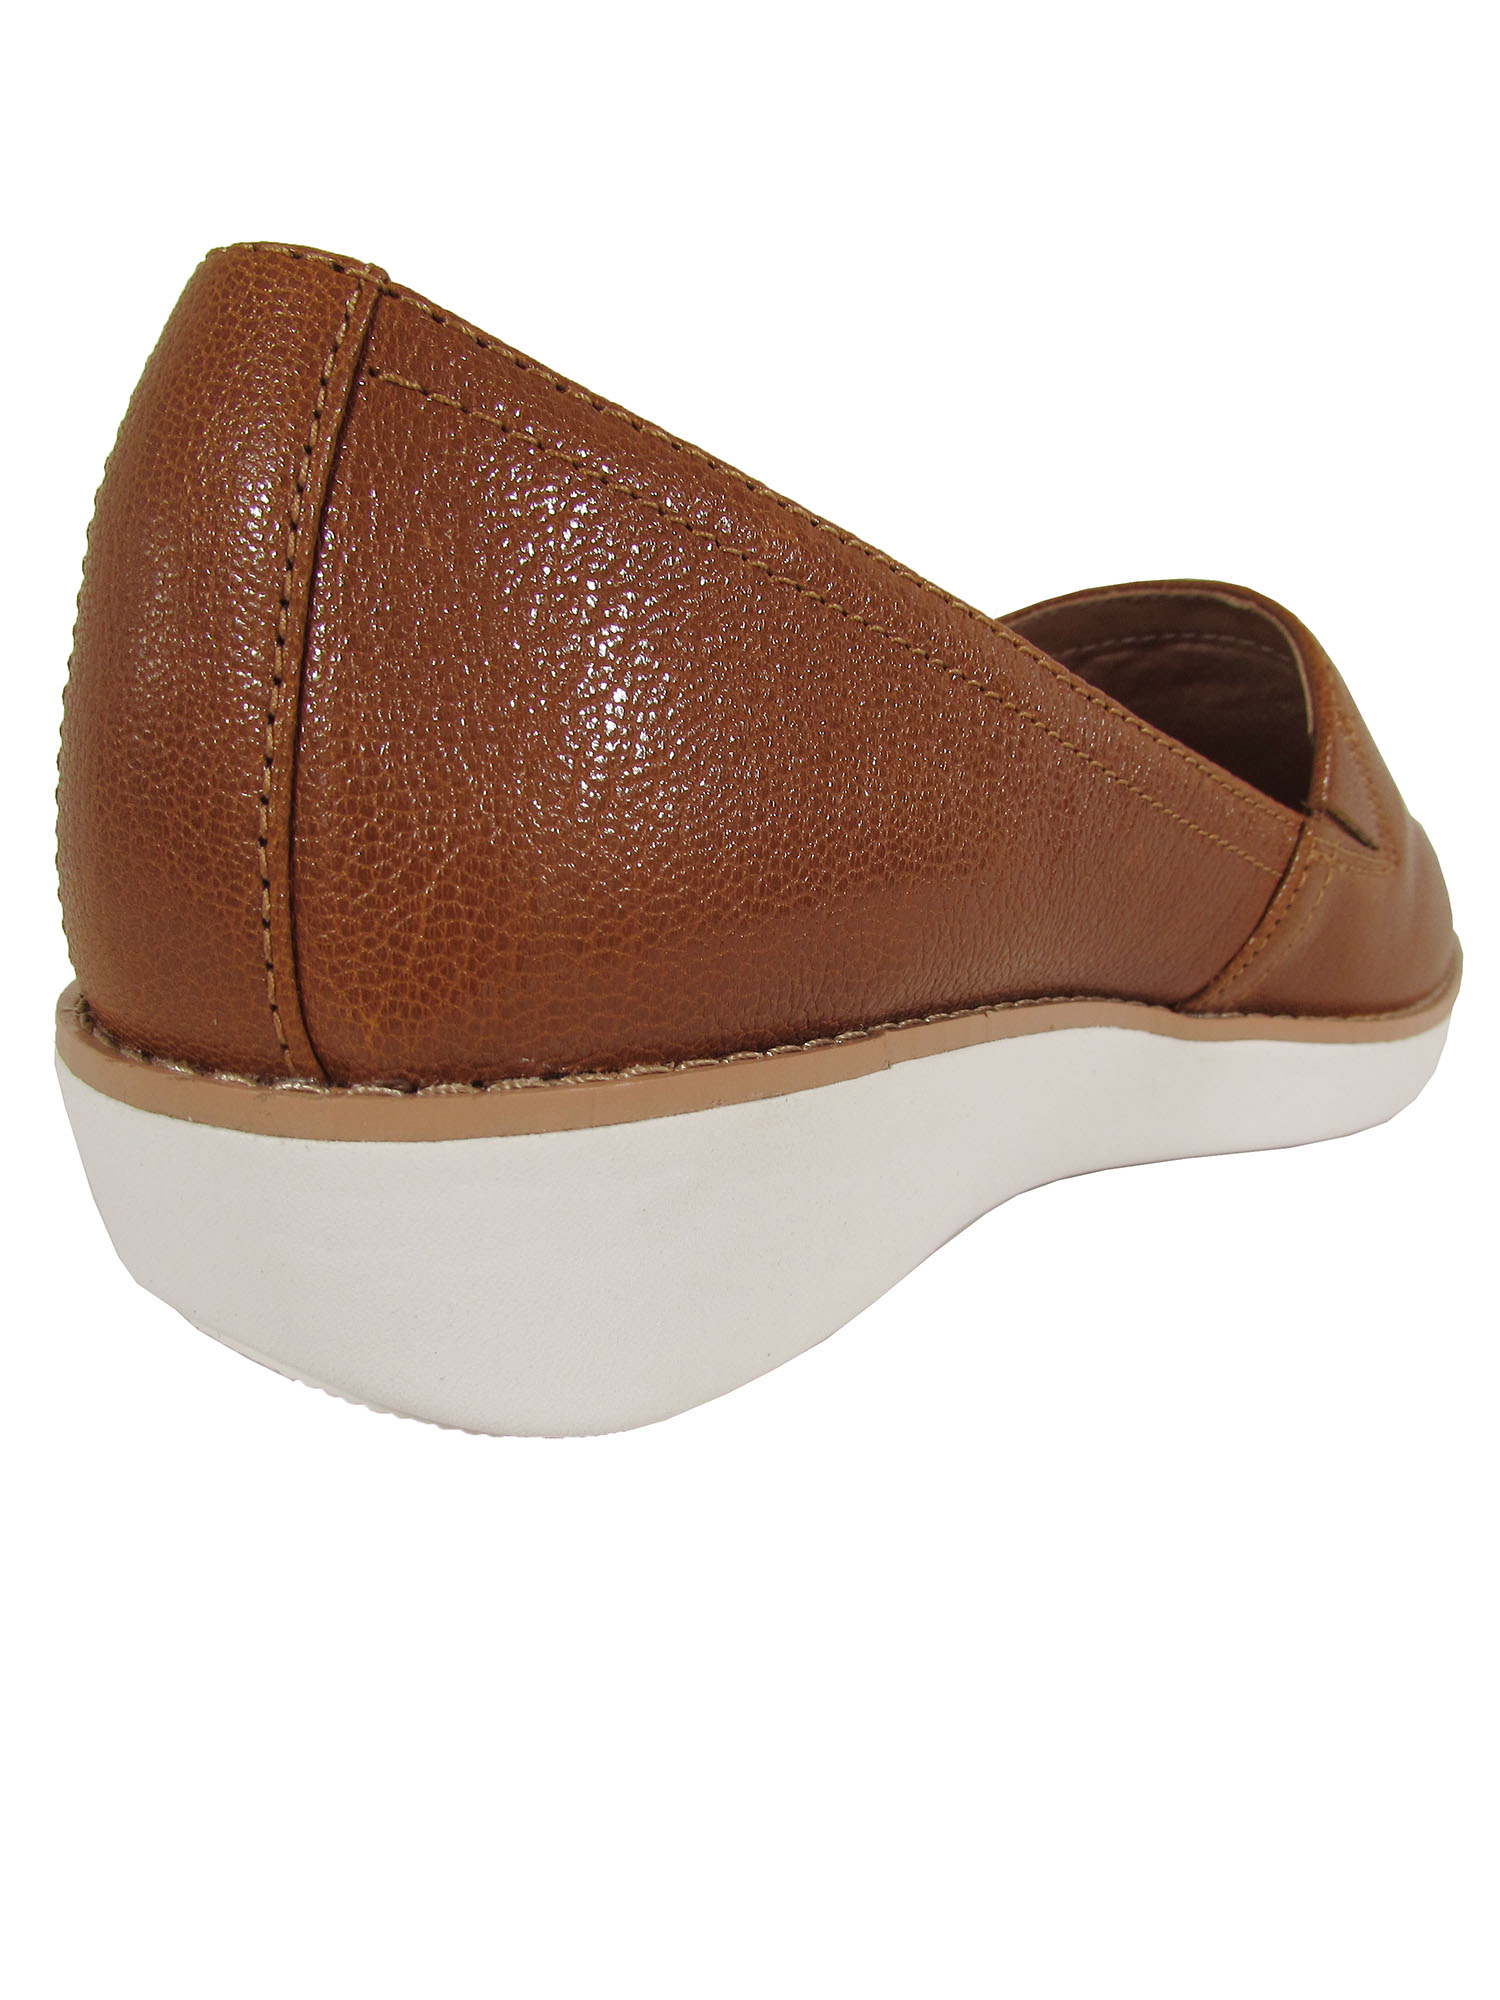 Fitflop-Womens-Casa-Slip-On-Loafer-Shoes thumbnail 10